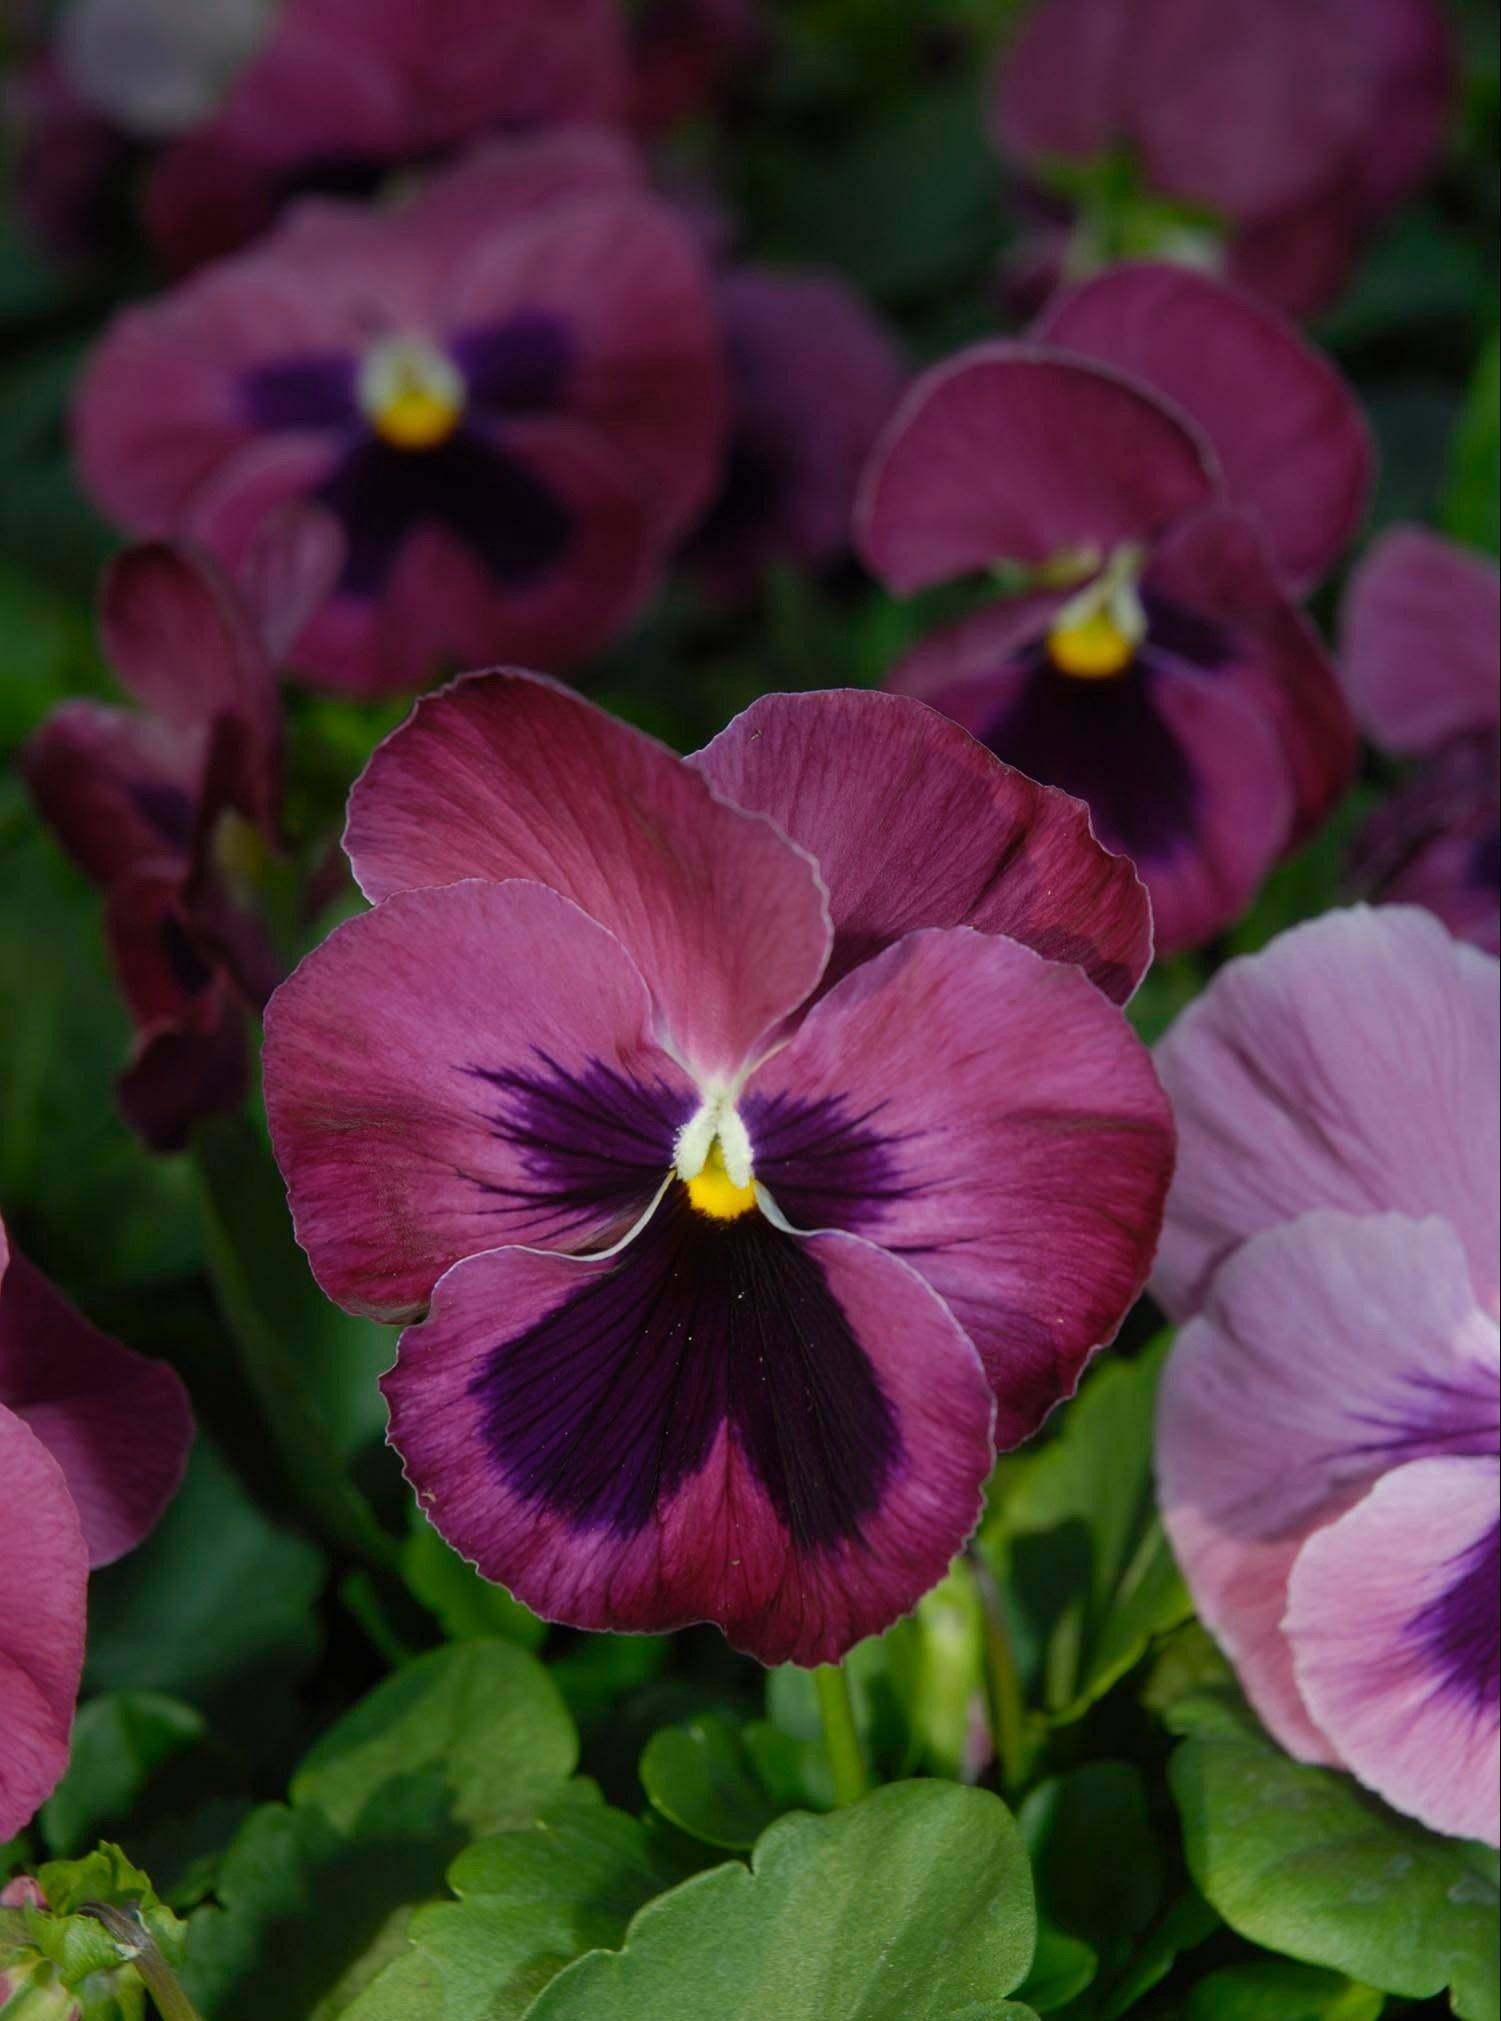 Shopping tip for pansies: Buy large plants in full flower. Pansies will not develop much in the autumn season.